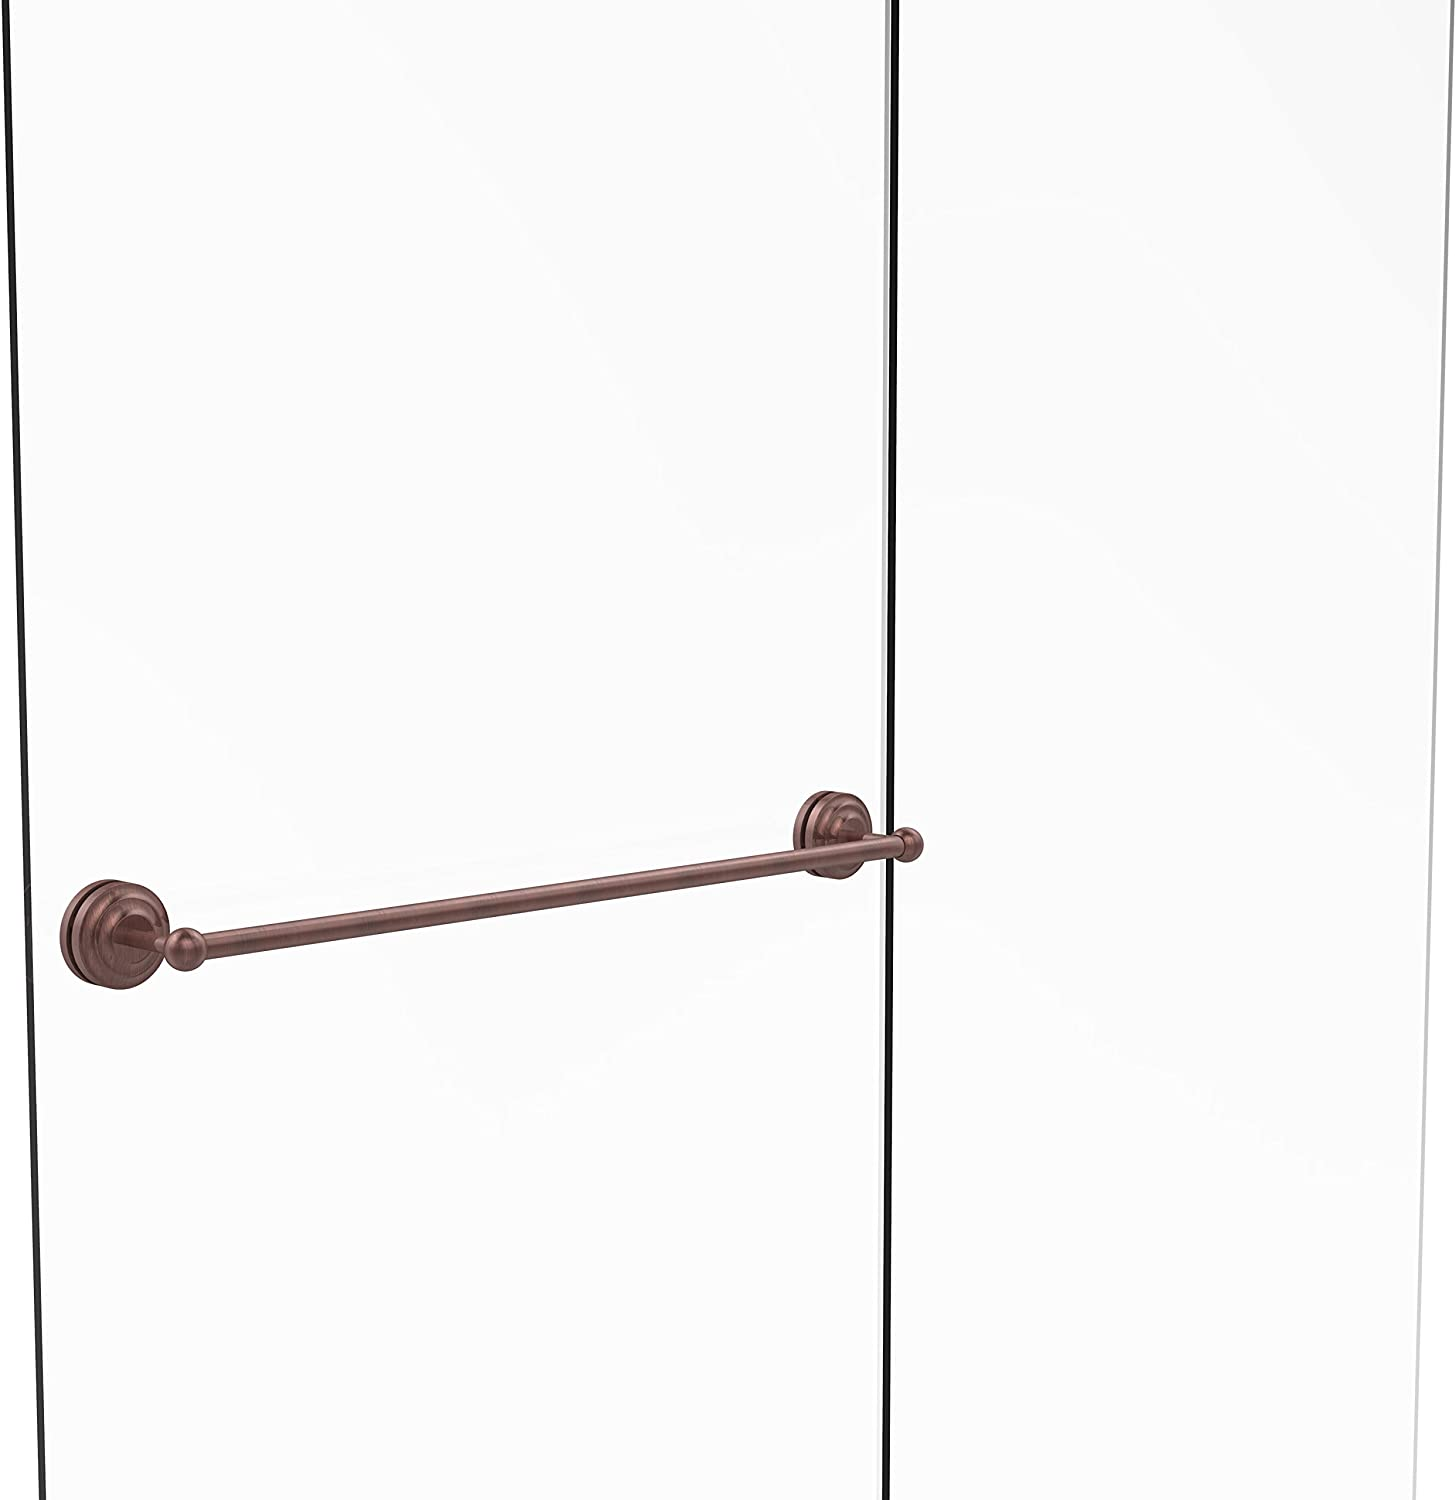 Allied Brass Que New Collection 30 Inch Shower Door Towel Bar, QN-41-SM-30-CA